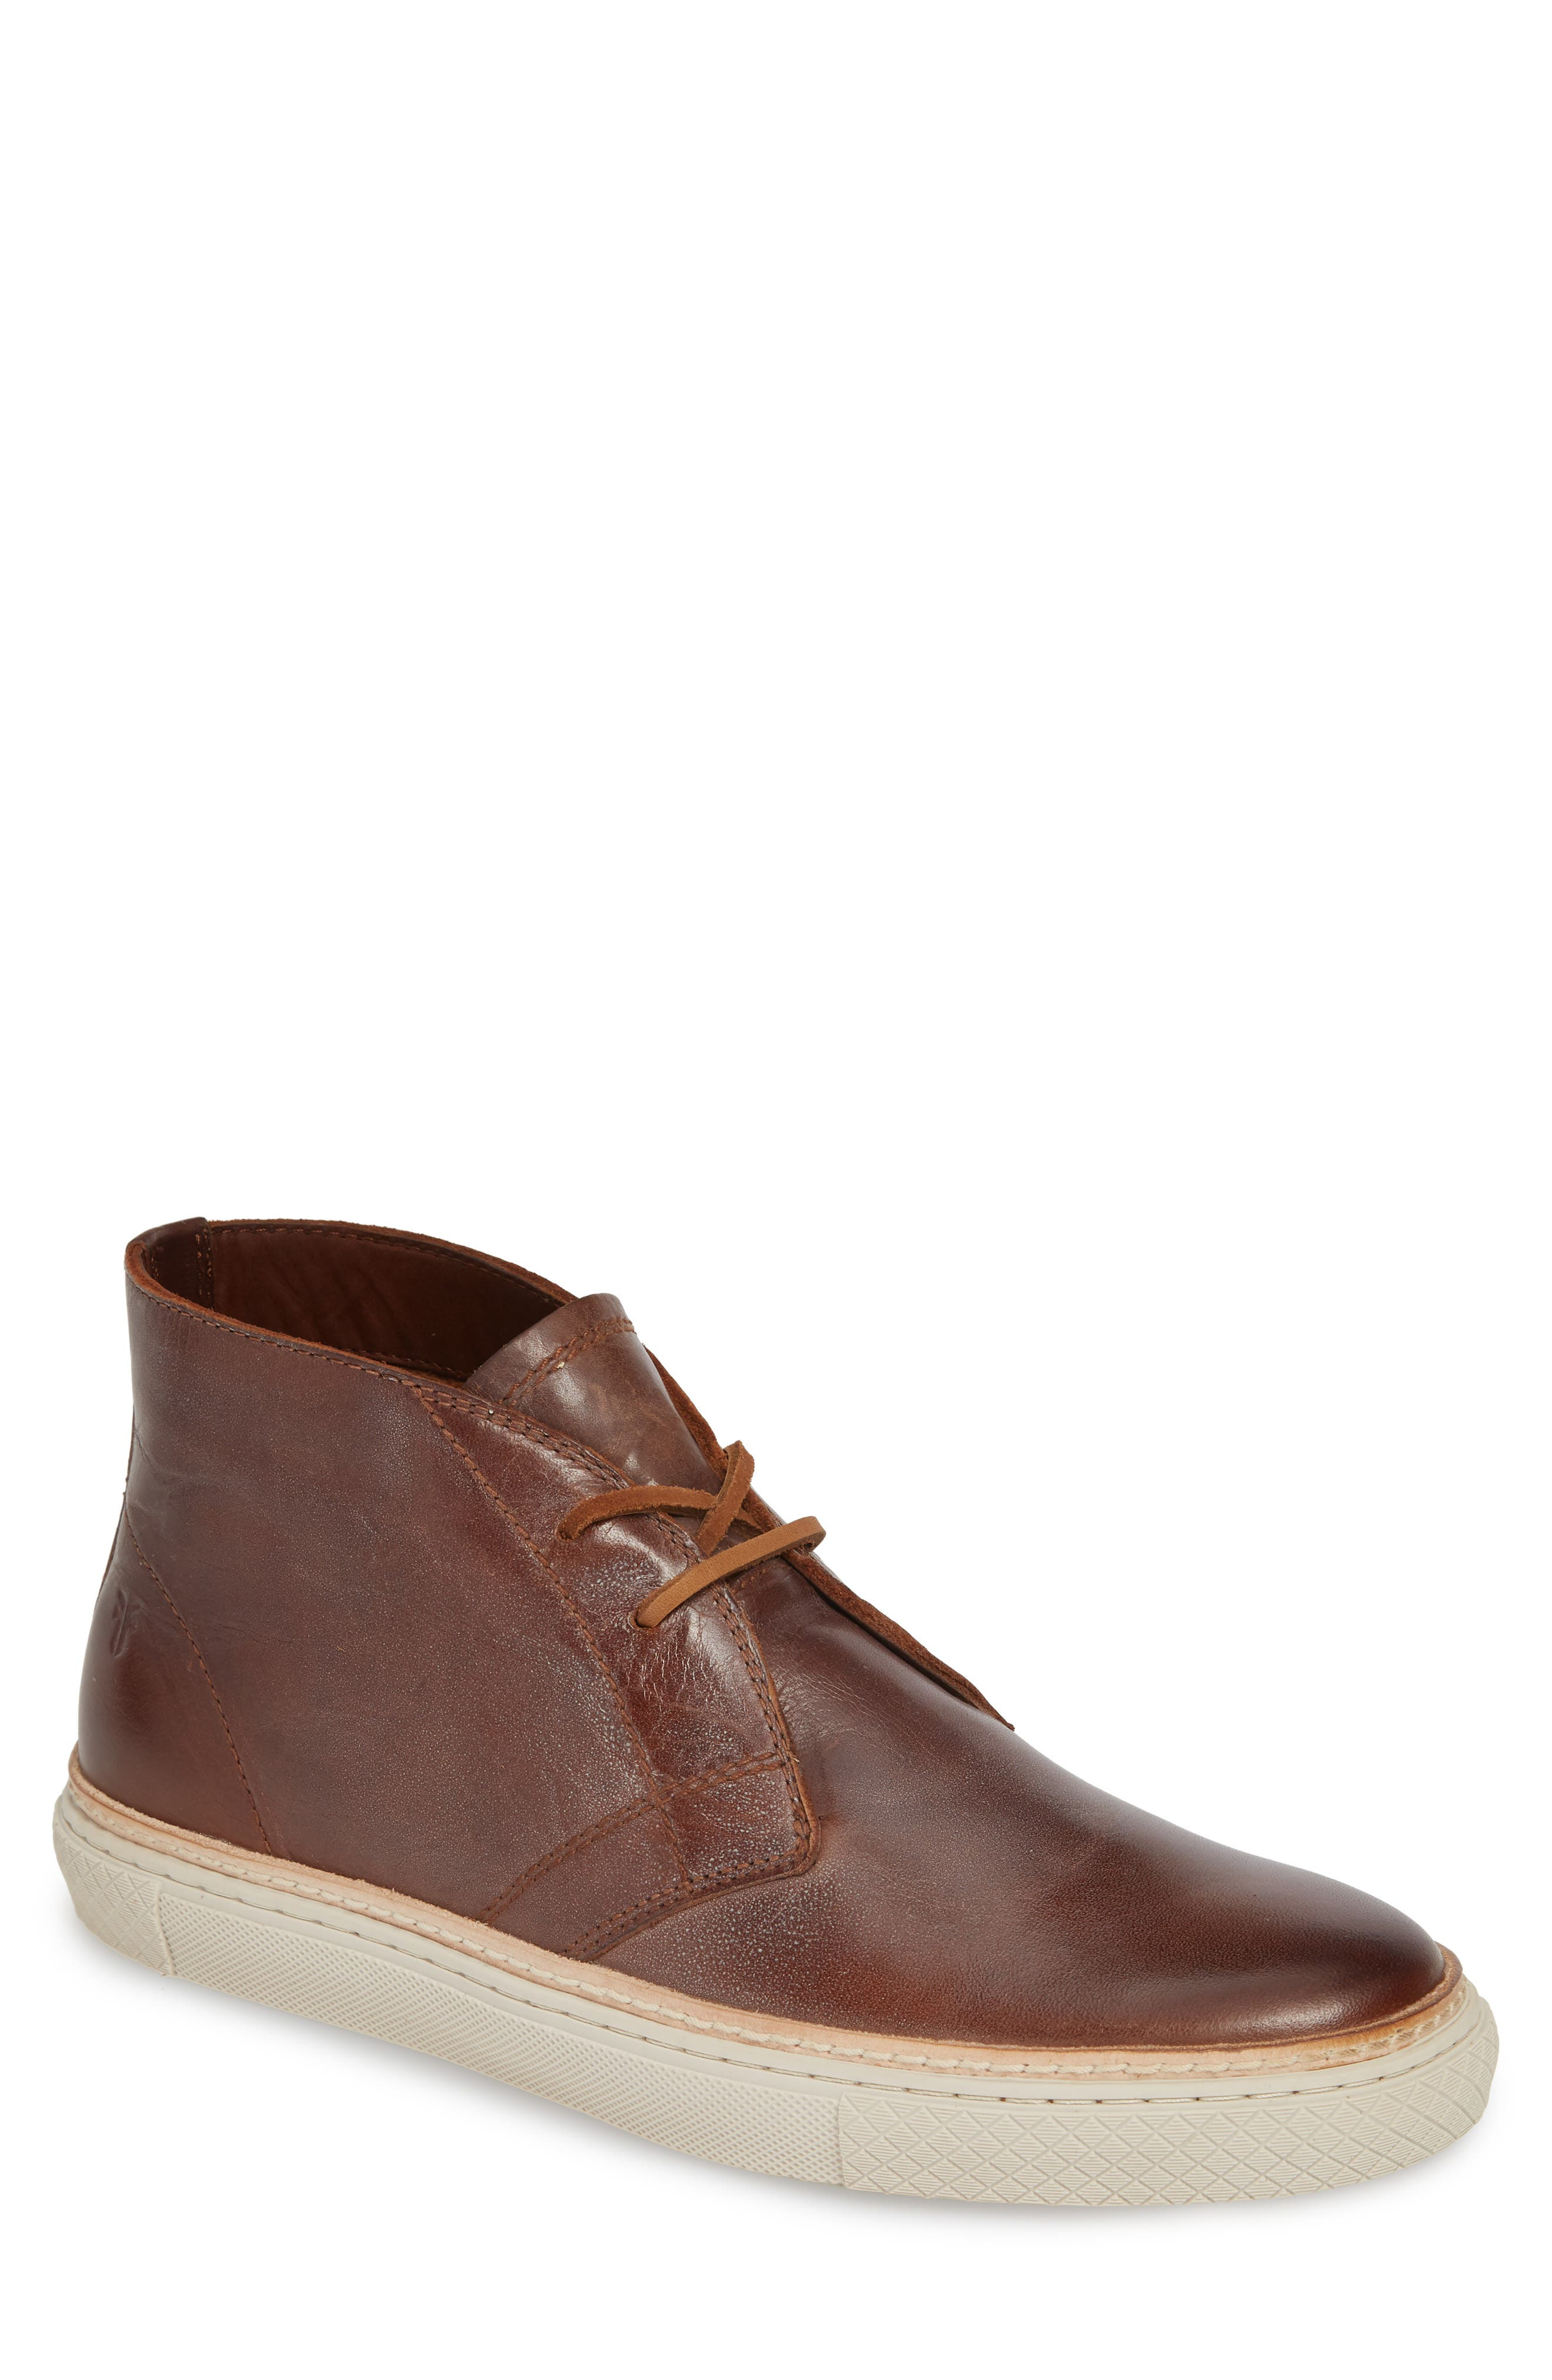 Essex Chukka Boot, Main, color, COGNAC LEATHER